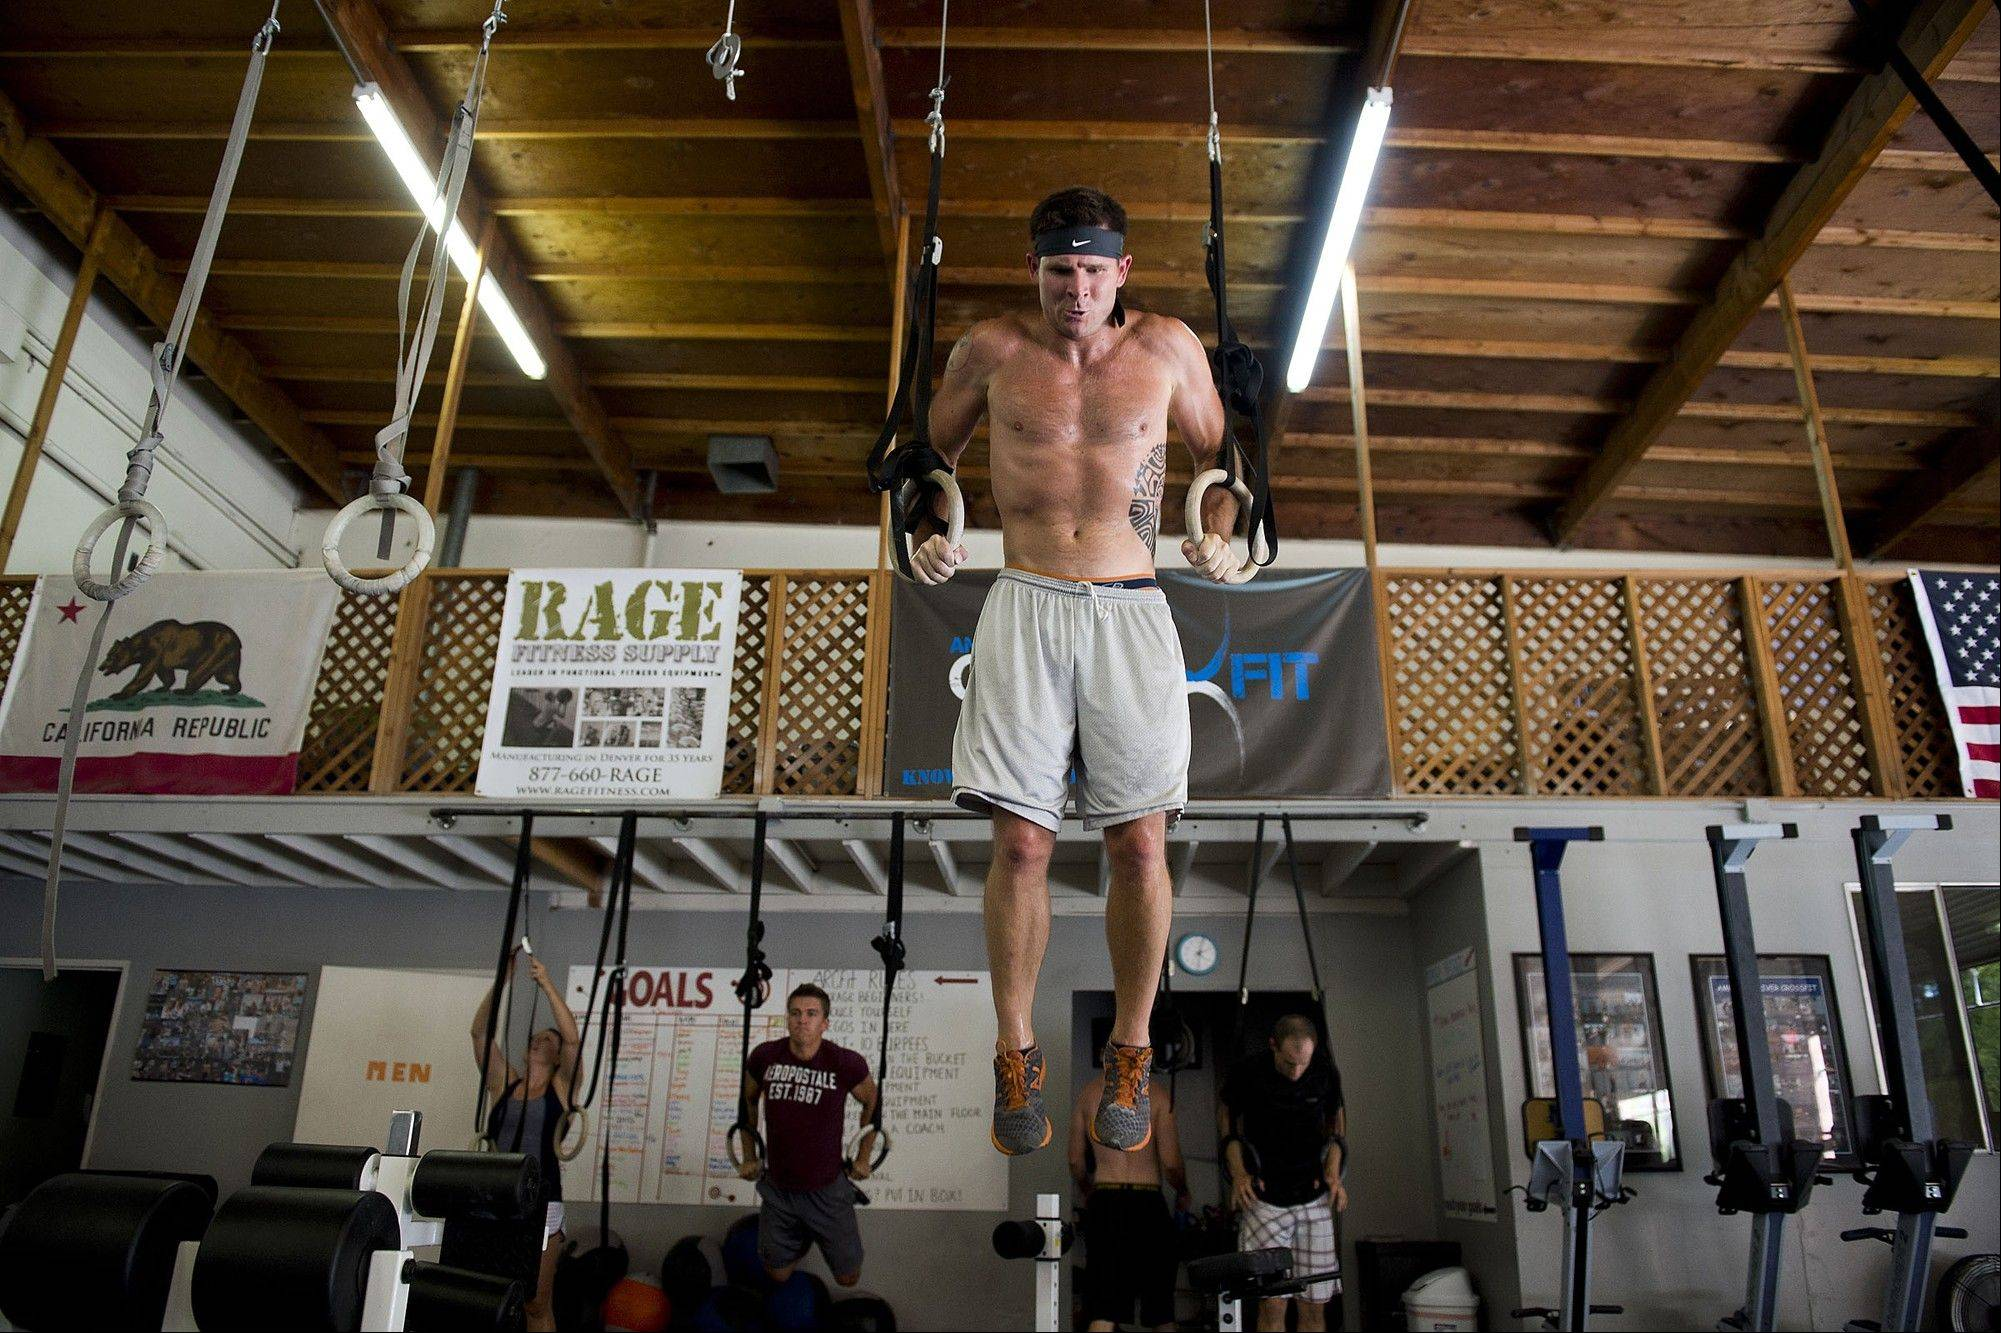 Trevor Remick exercises his upper body, performing dips on the rings at the American River CrossFit Gym in Sacramento, Calif.